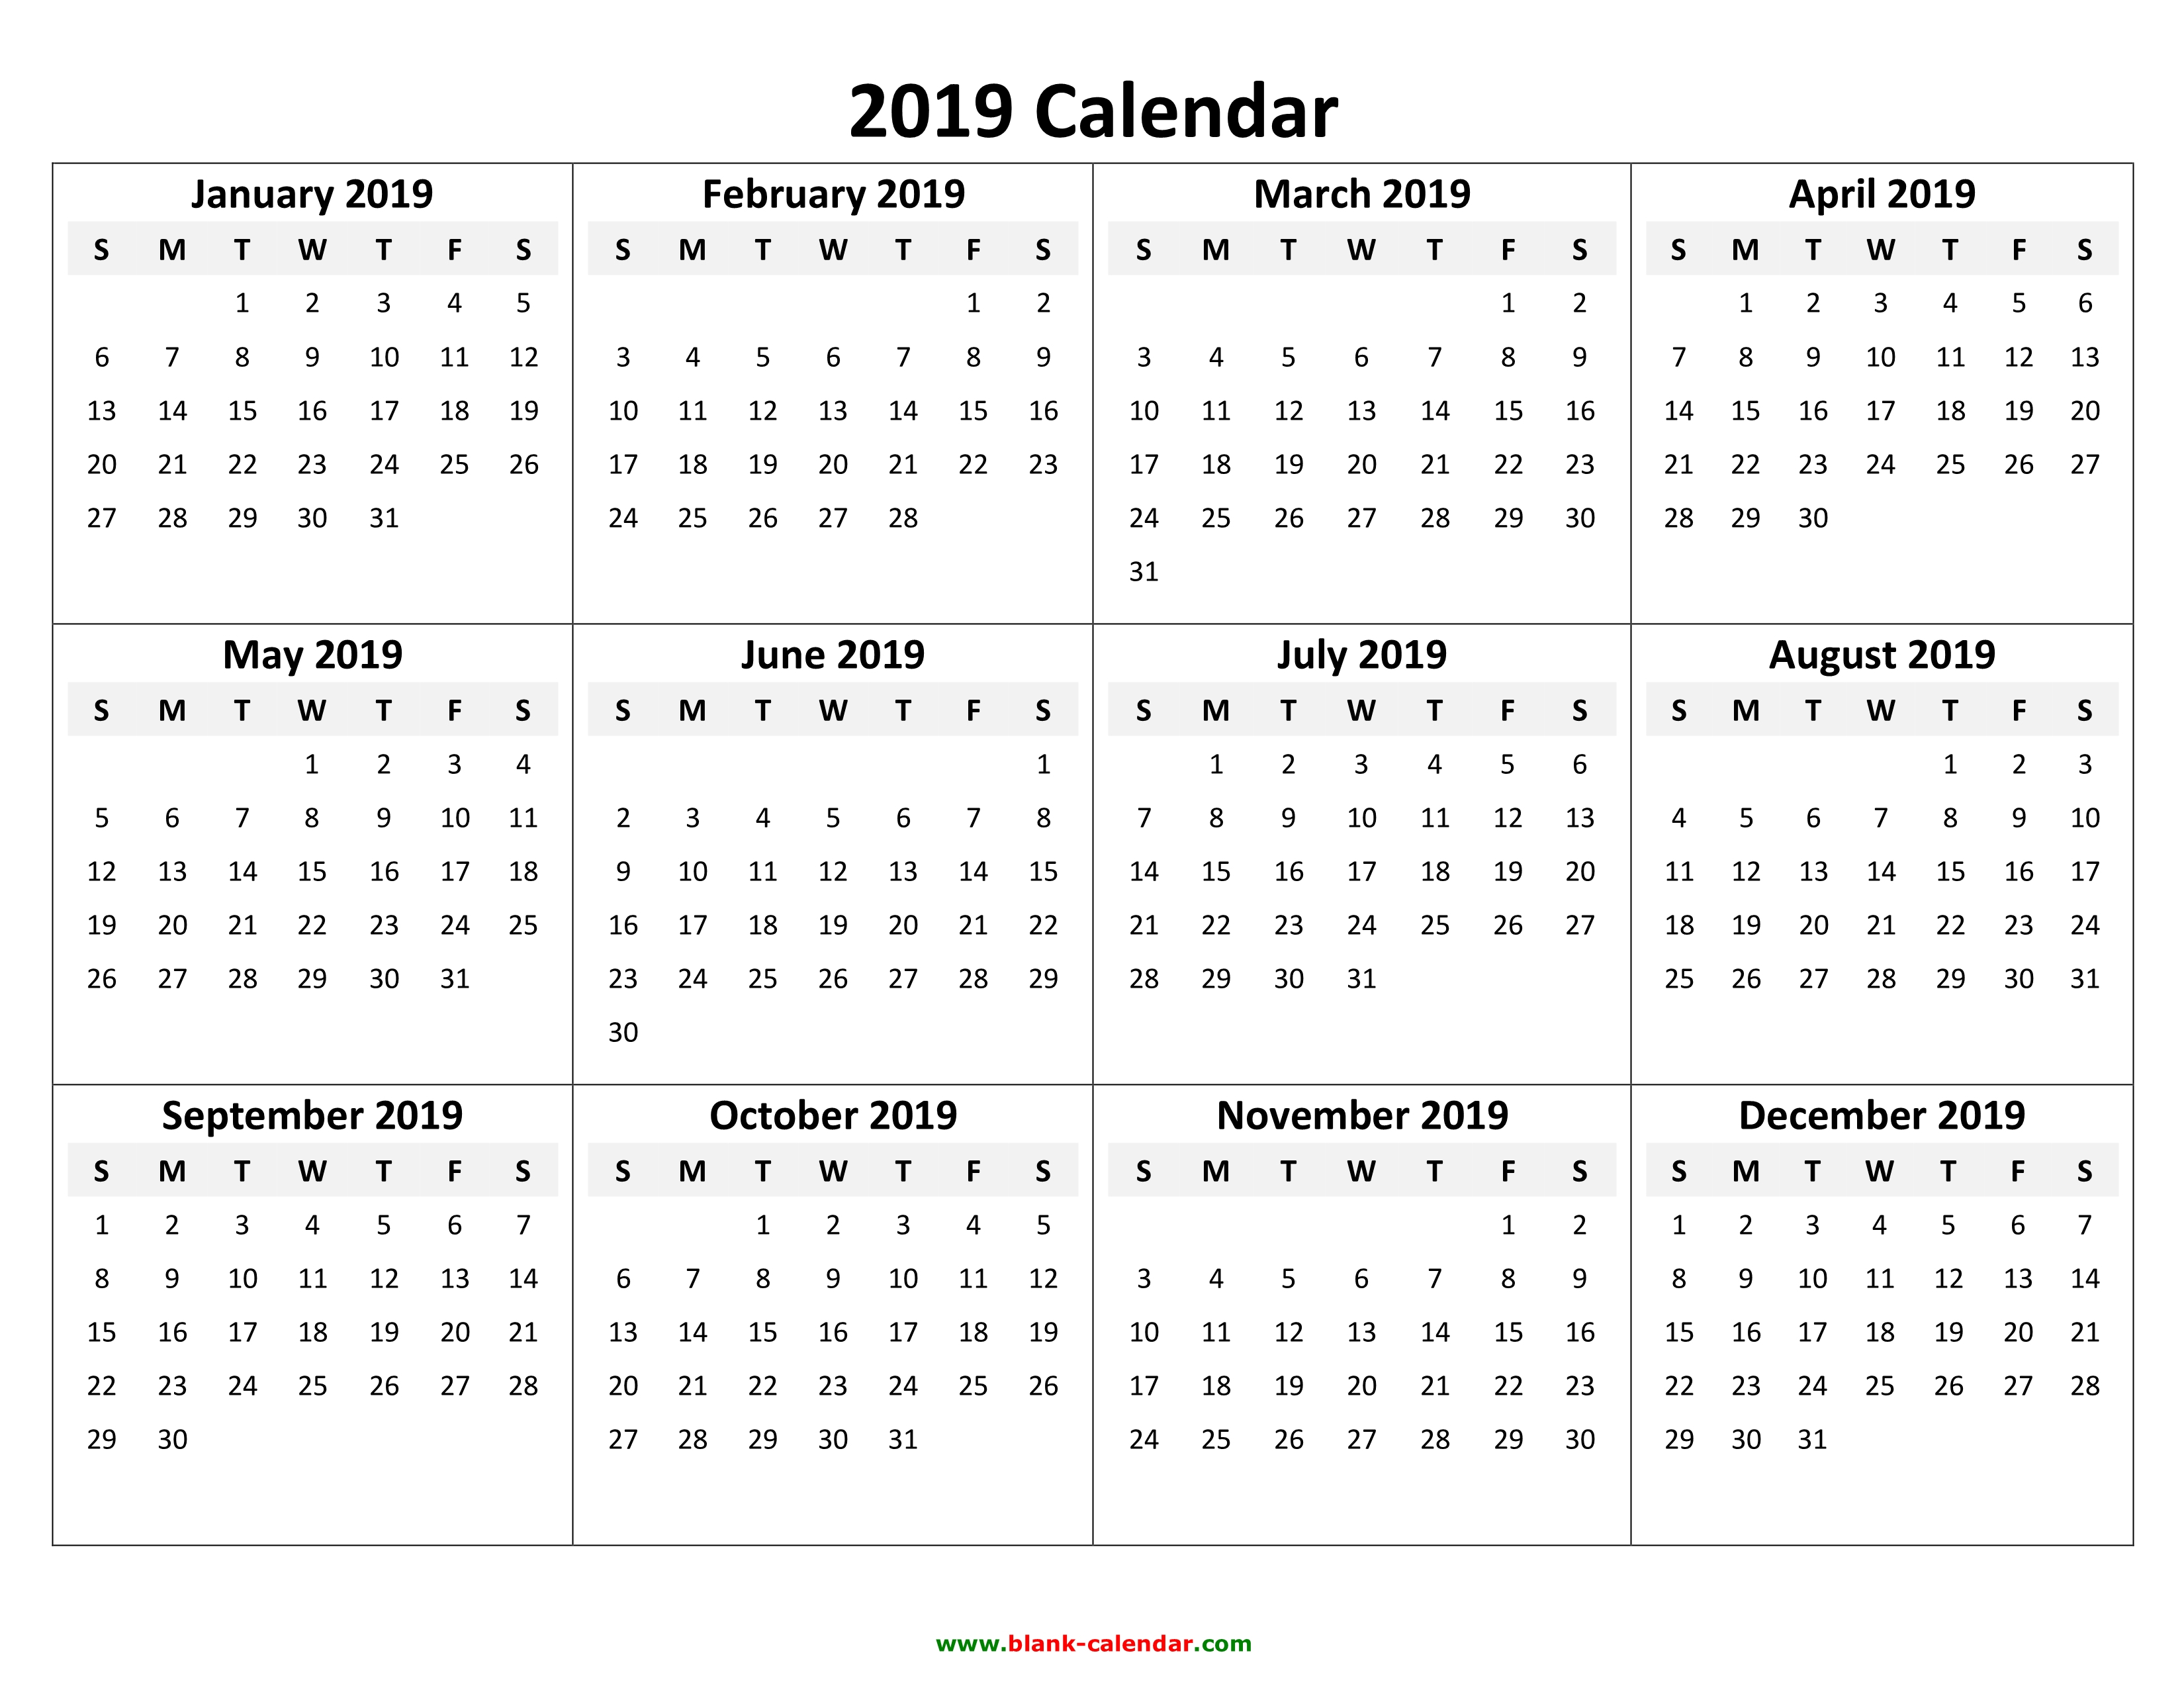 2019 Yearly Calendar - Free Download